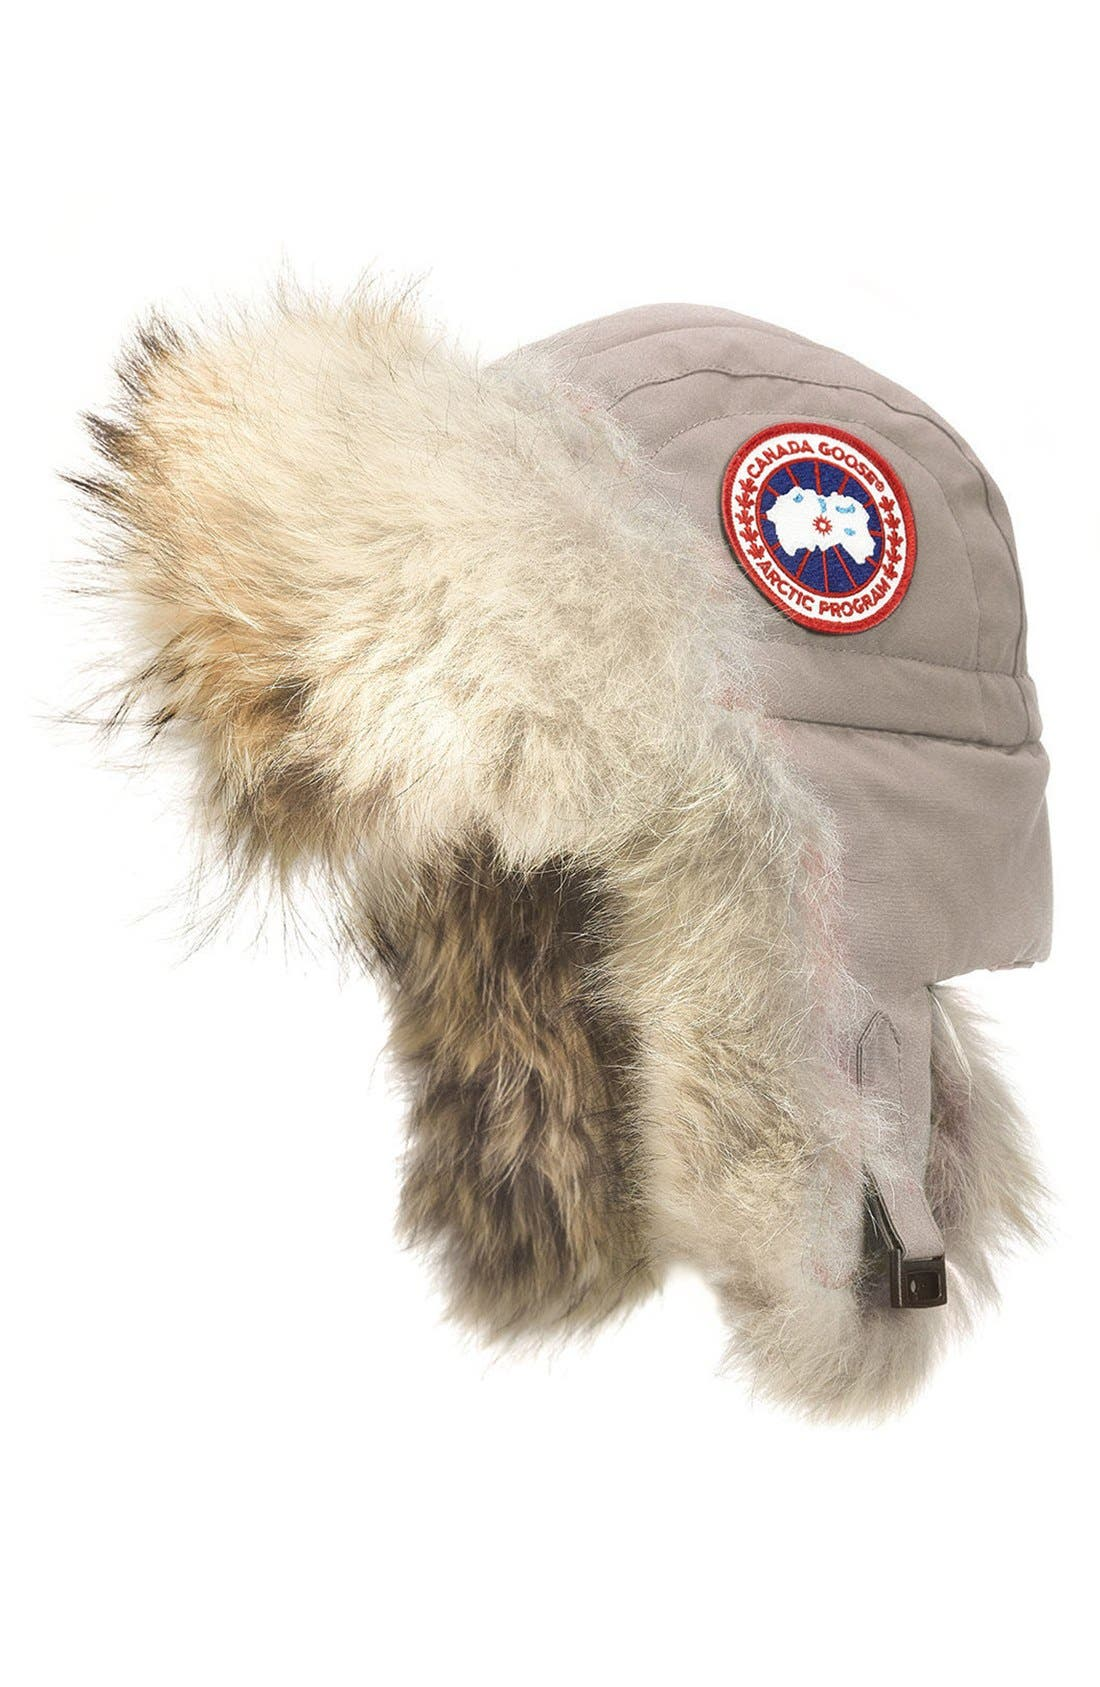 CANADA GOOSE, Aviator Hat with Genuine Coyote Fur Trim, Main thumbnail 1, color, LIMESTONE